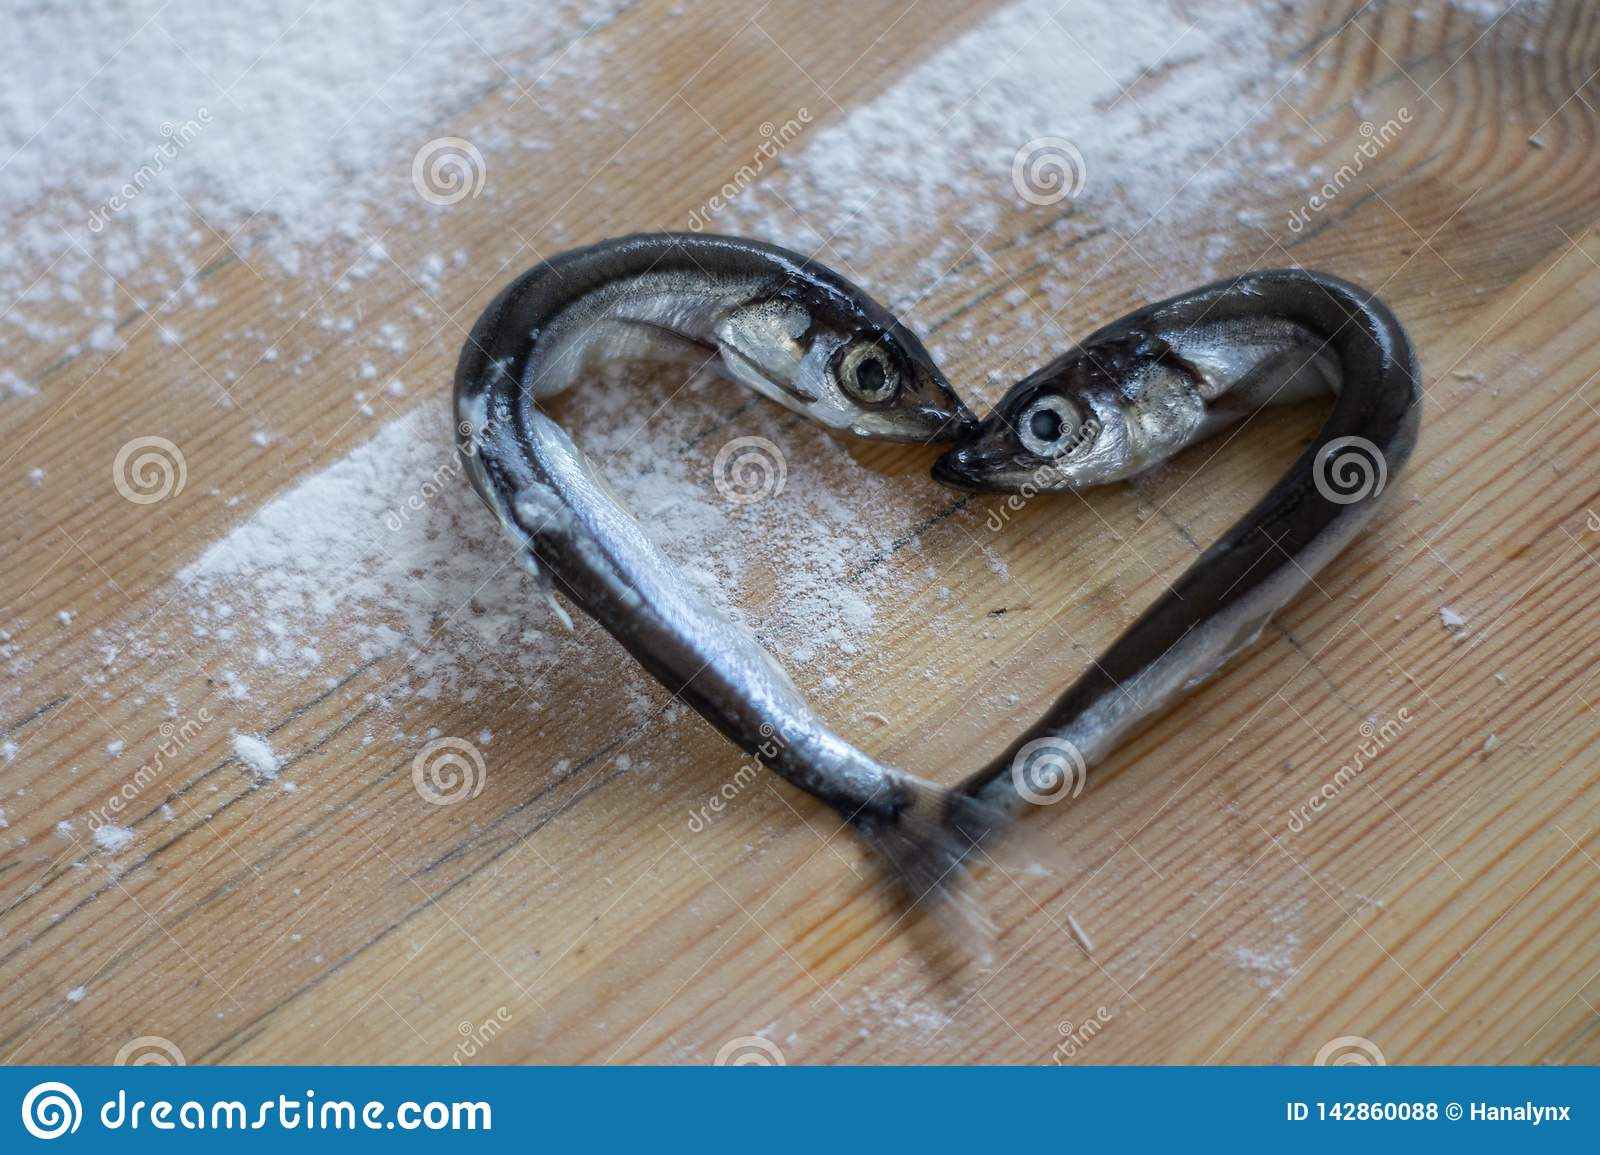 Small silver sea fish laid out in the shape of a heart